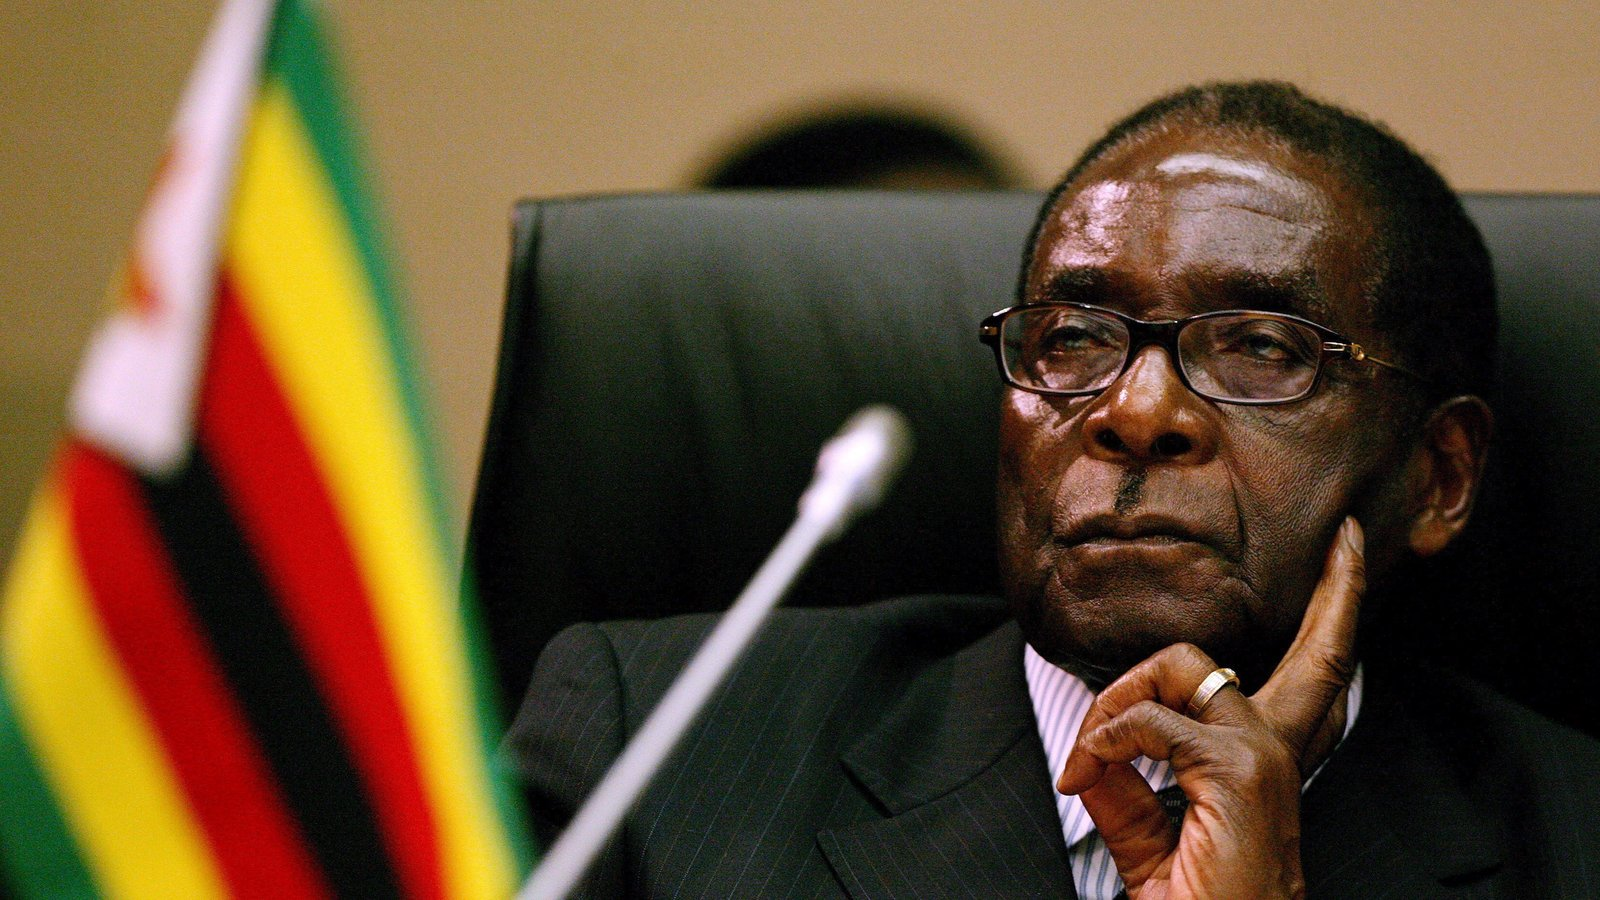 Zimbabwean President Robert Mugabe could hold fresh elections in two years